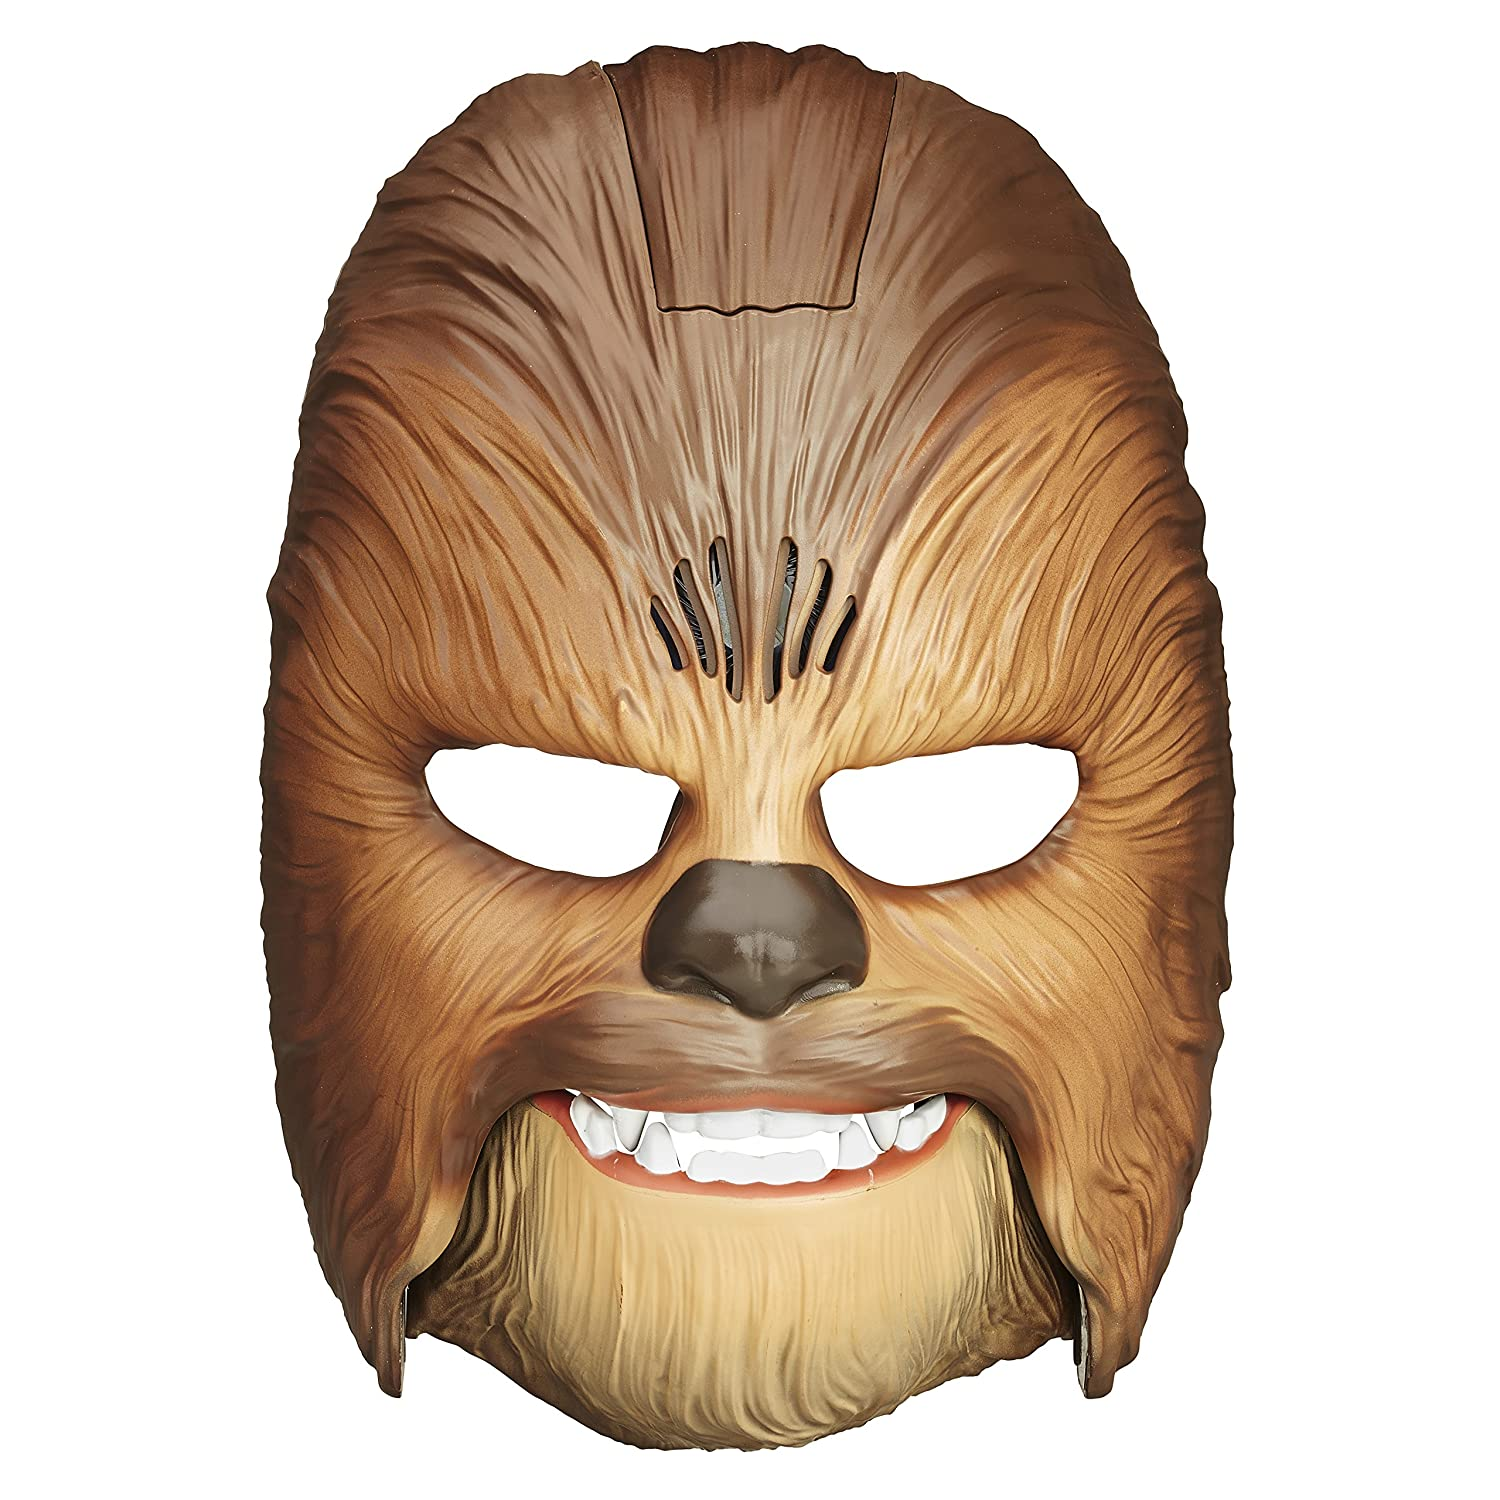 Star Wars Movie Roaring Chewbacca Wookiee Sounds Mask  Funny GRAAAAWR Noises  Sound Effects  Ages 5 and up  Brown  Amazon Exclusive